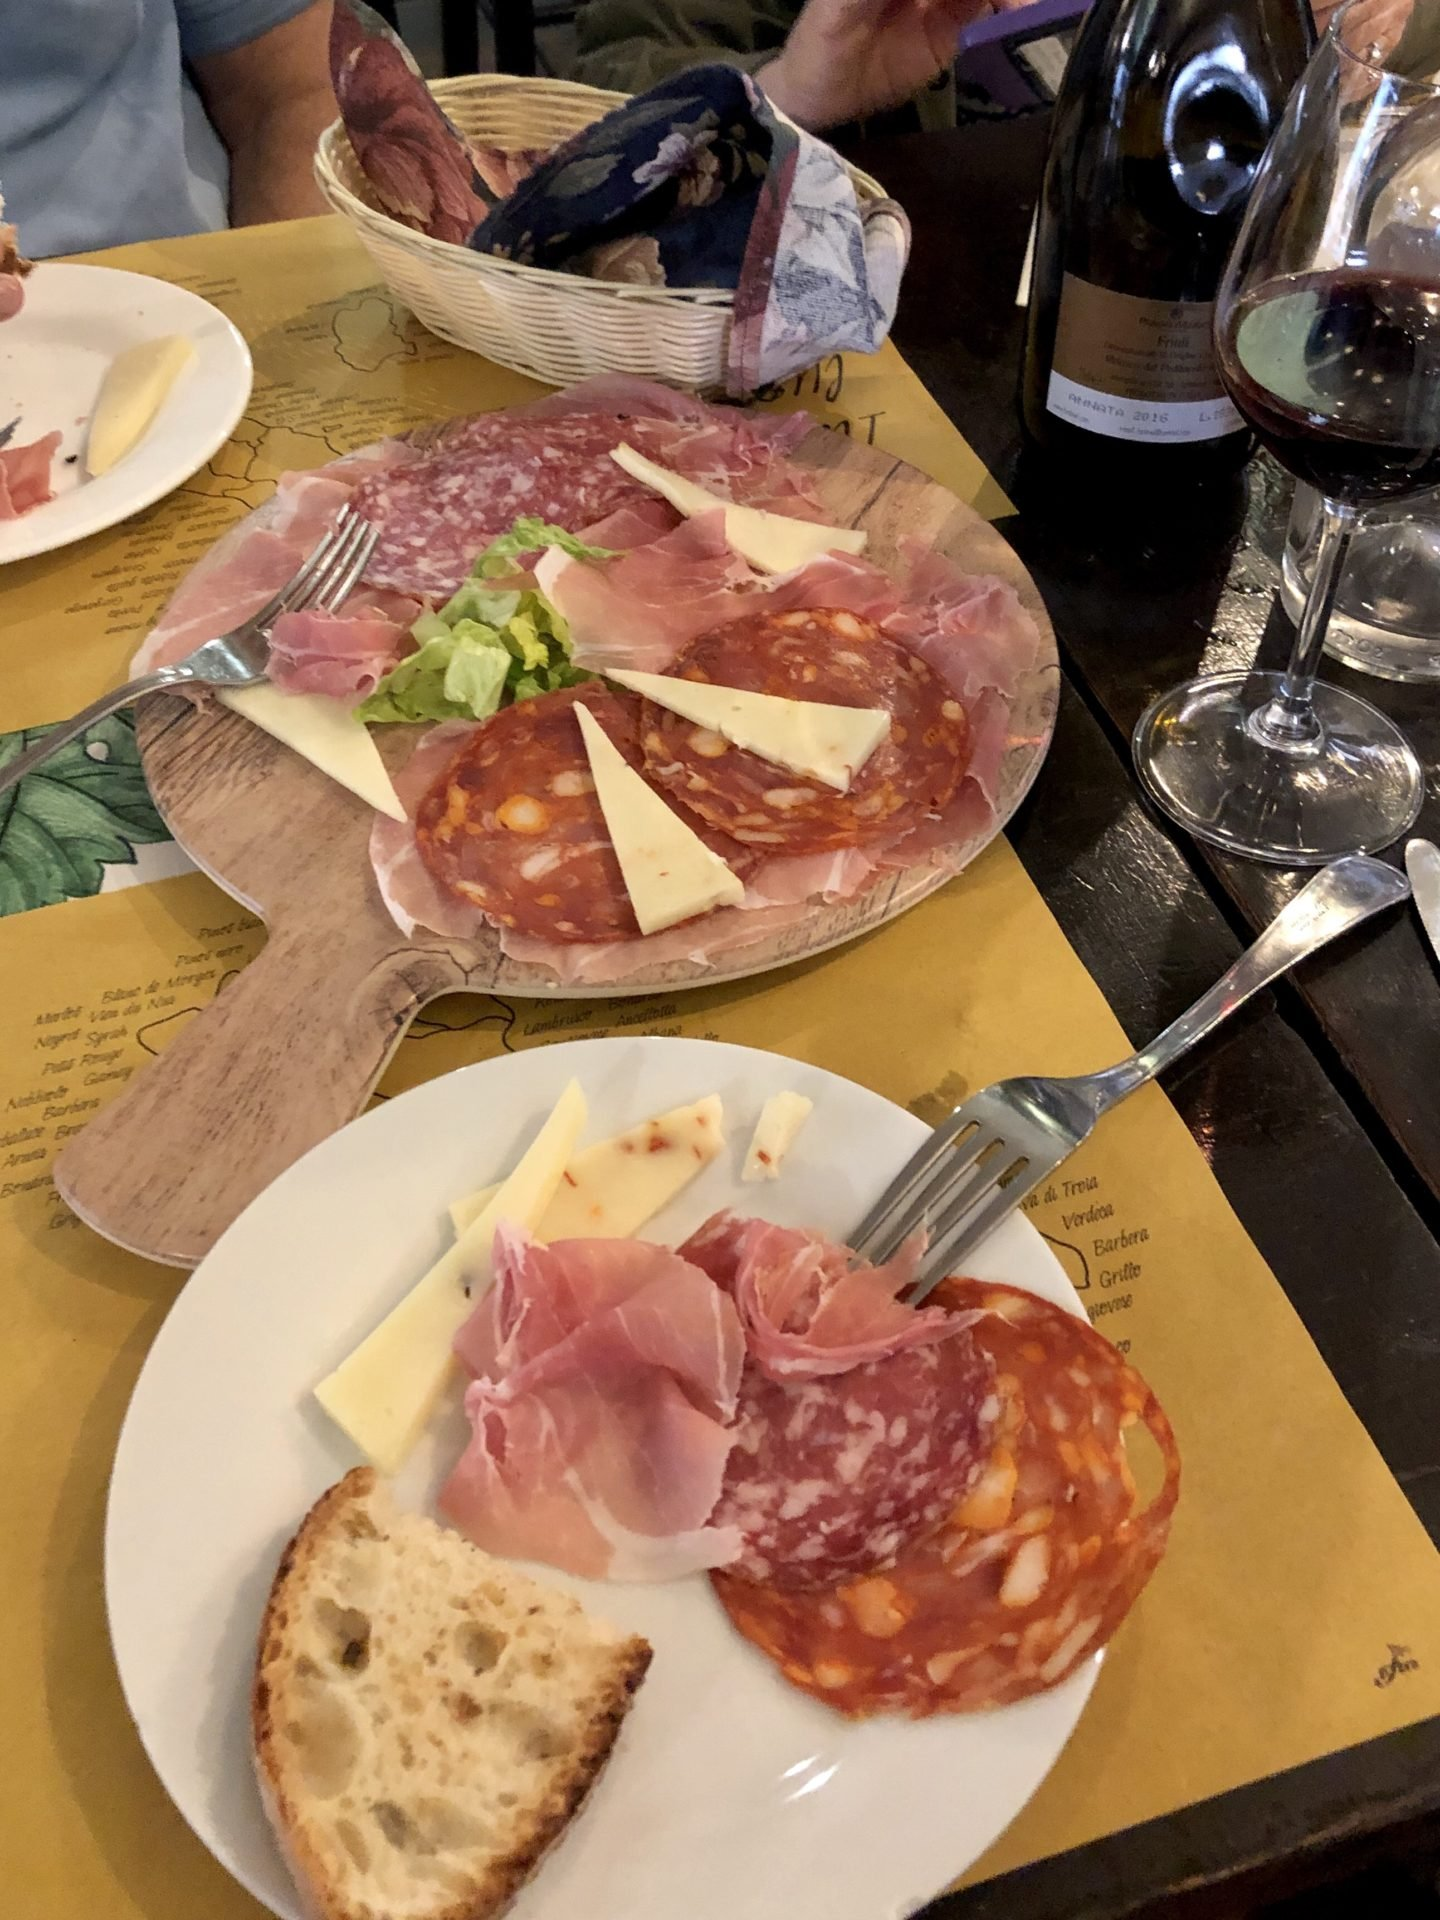 The Wine was a Refossco made with a young grape from the area of Refossco it  certainly went down a treat with our Italian Ham and Caciocavallo cheese.